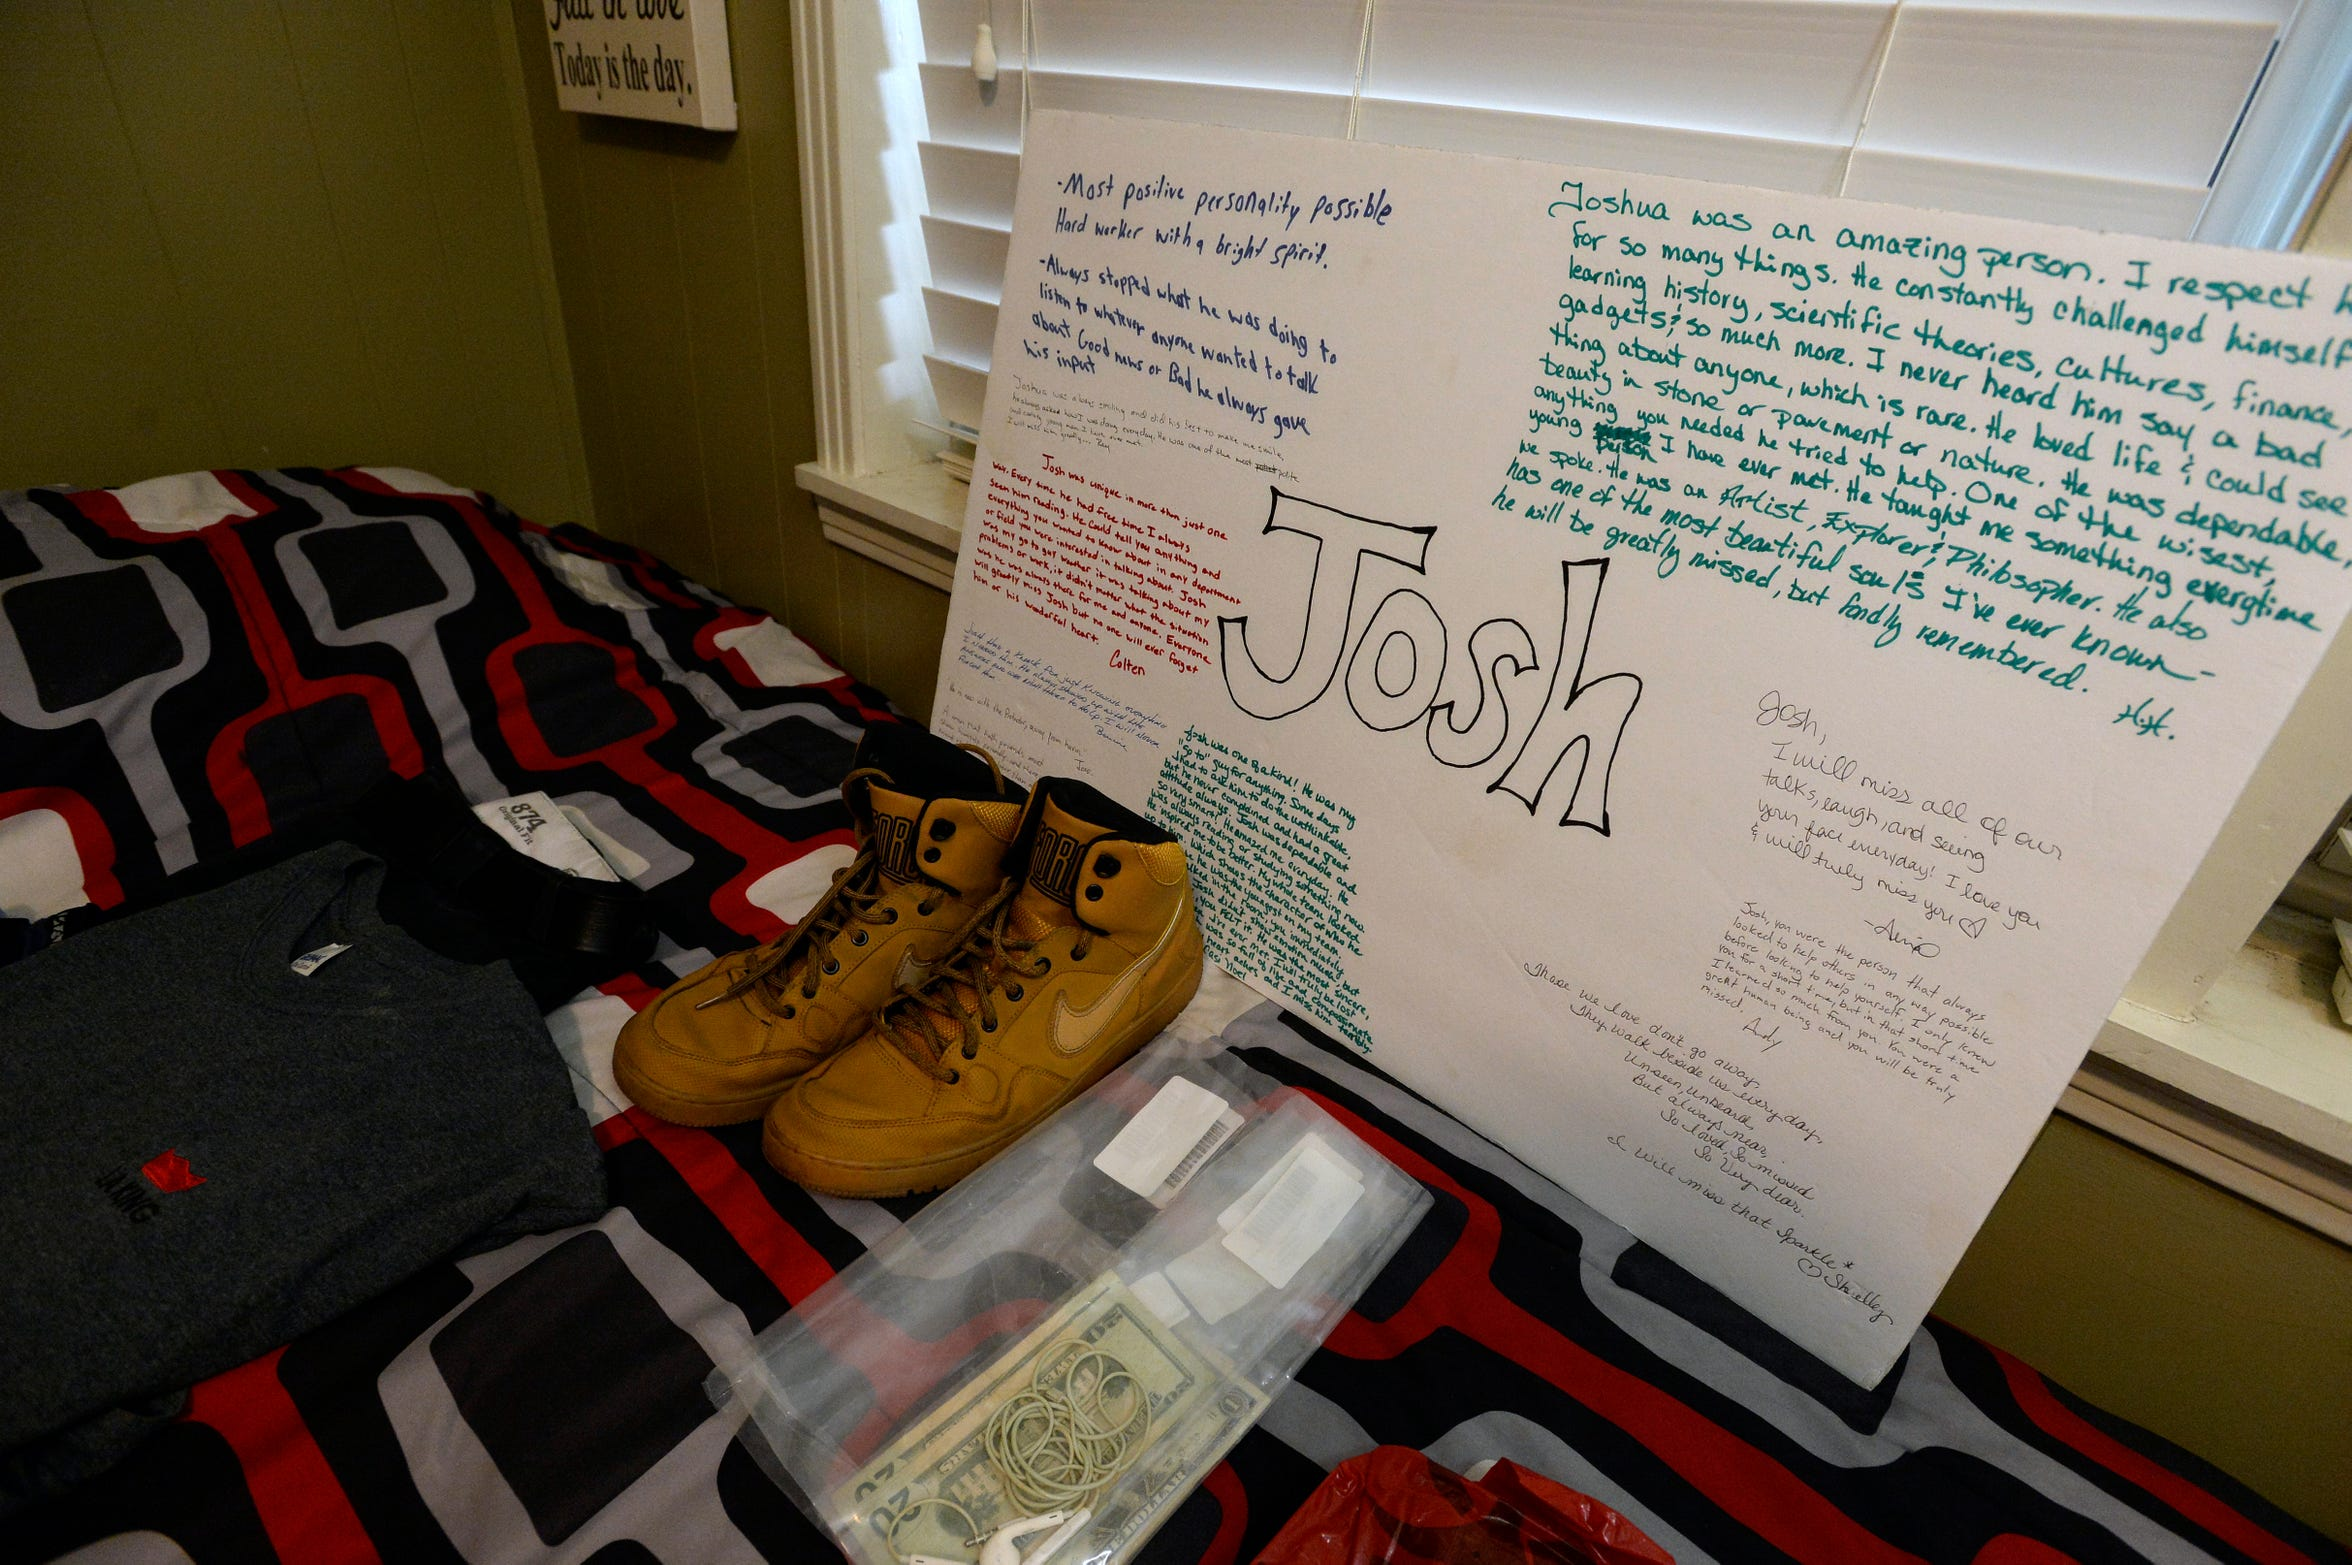 The clothes Josh Holton was wearing when he died and a memorial poster made by his co-workers are displayed on his bed Thursday, Oct. 18, 2018. Holton overdosed in 2016 after he bought what he thought was Xanax on the darkweb but received fentanyl.